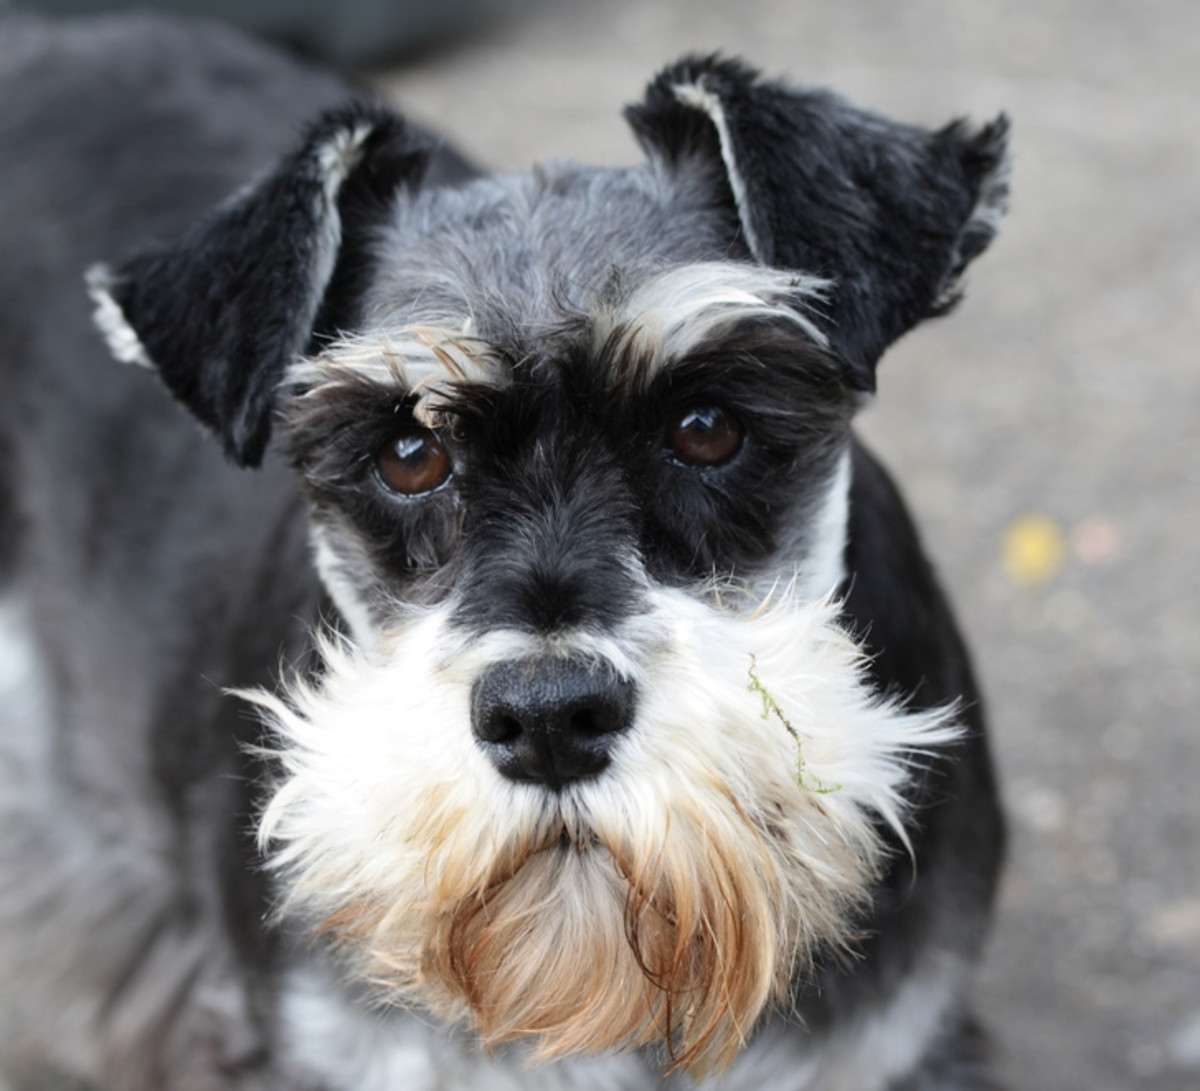 This is a black-and-silver miniature schnauzer with uncropped ears.